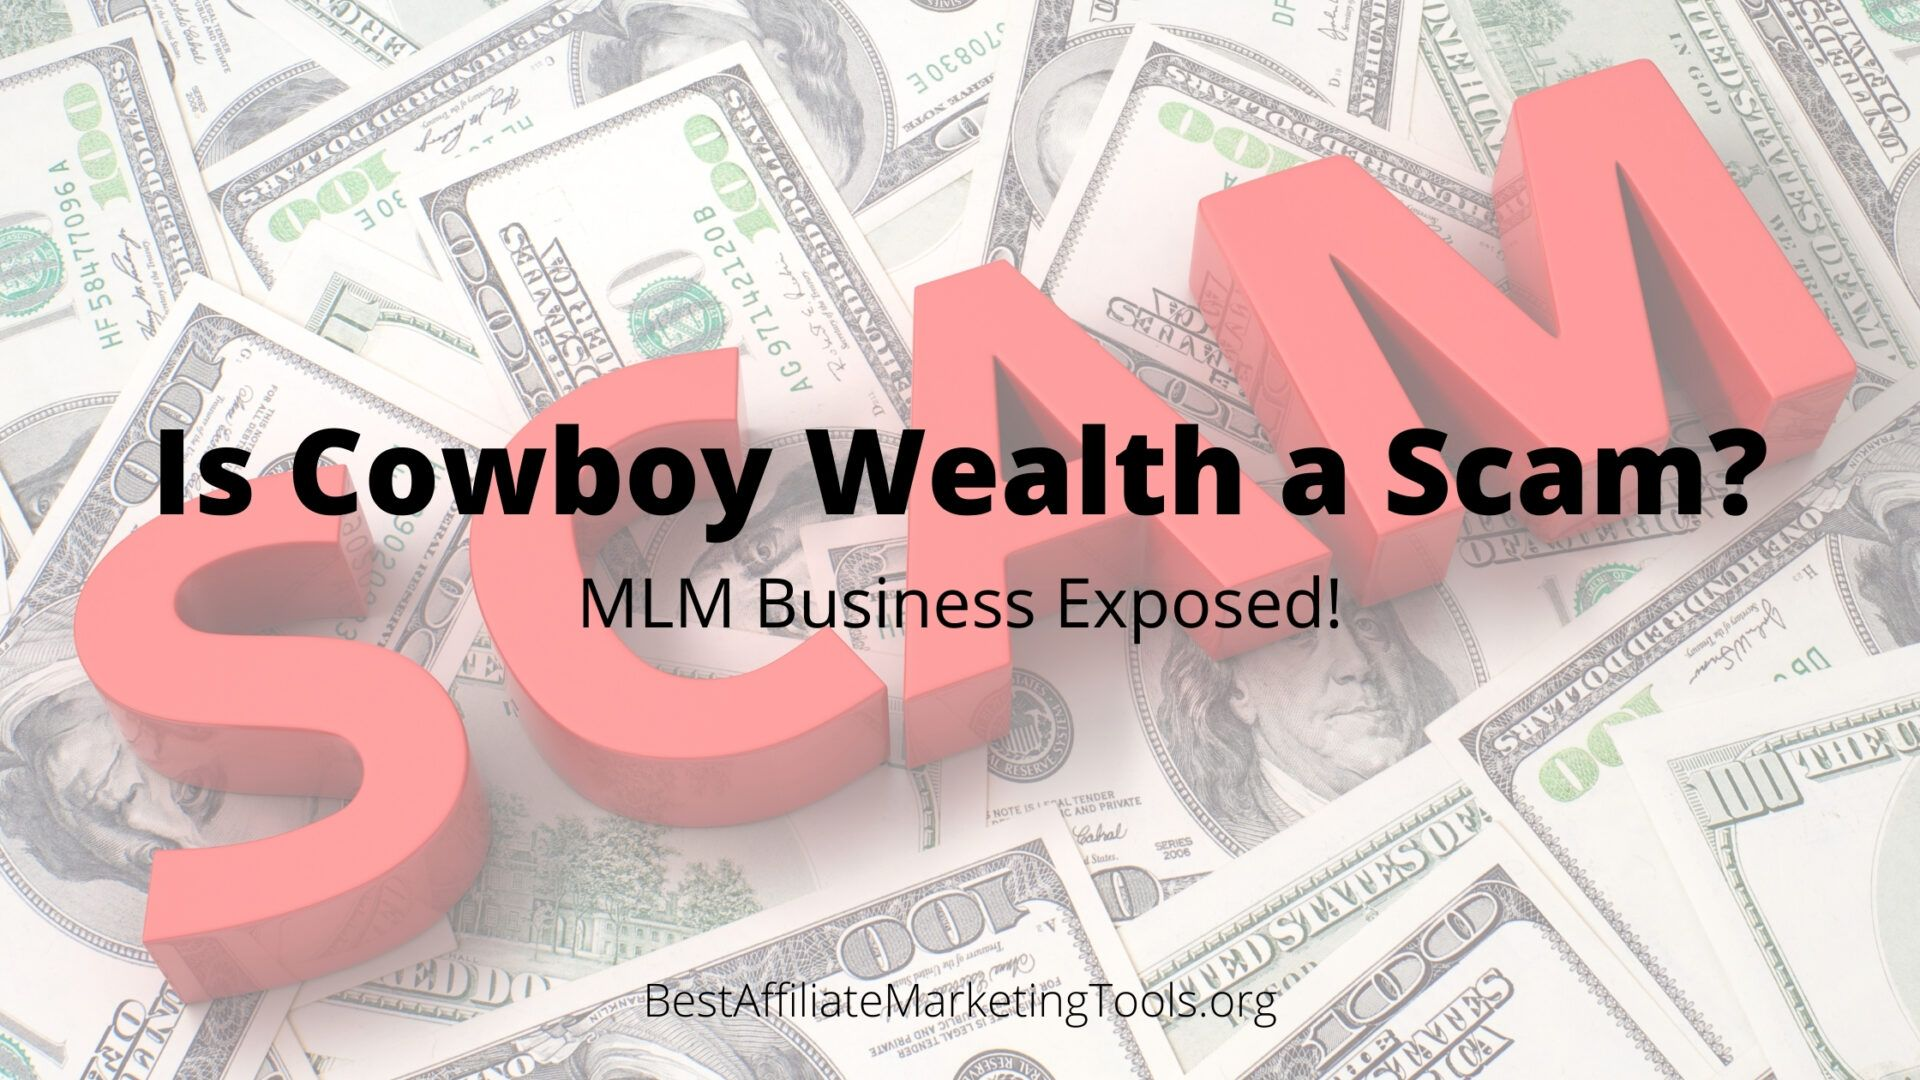 Is Cowboy Wealth a Scam